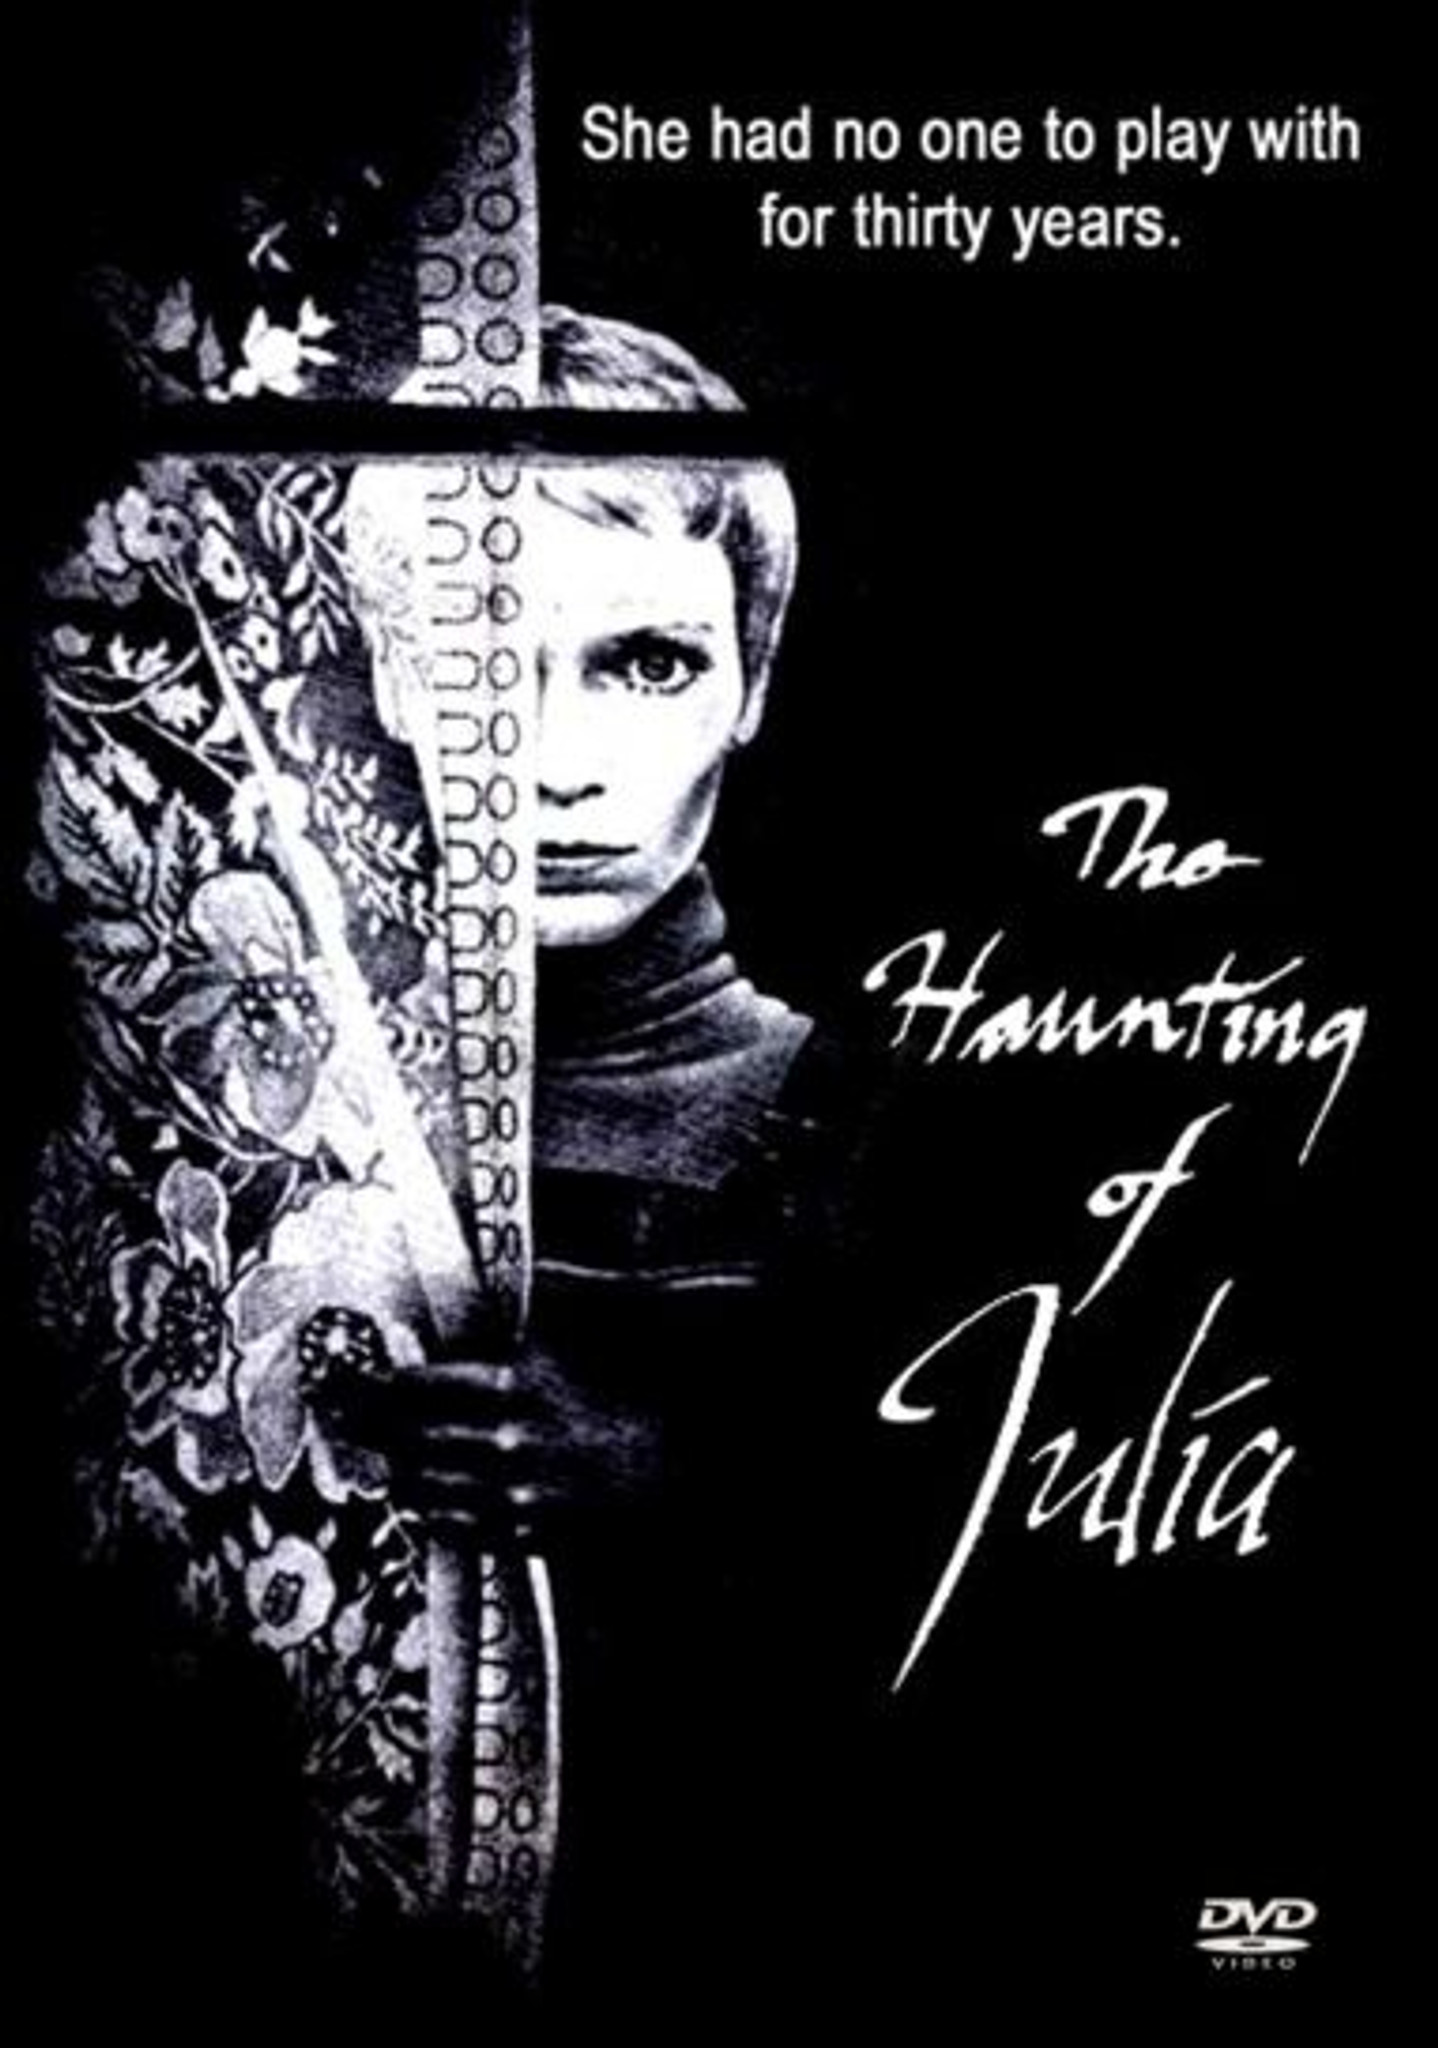 The Haunting of Julia DVD